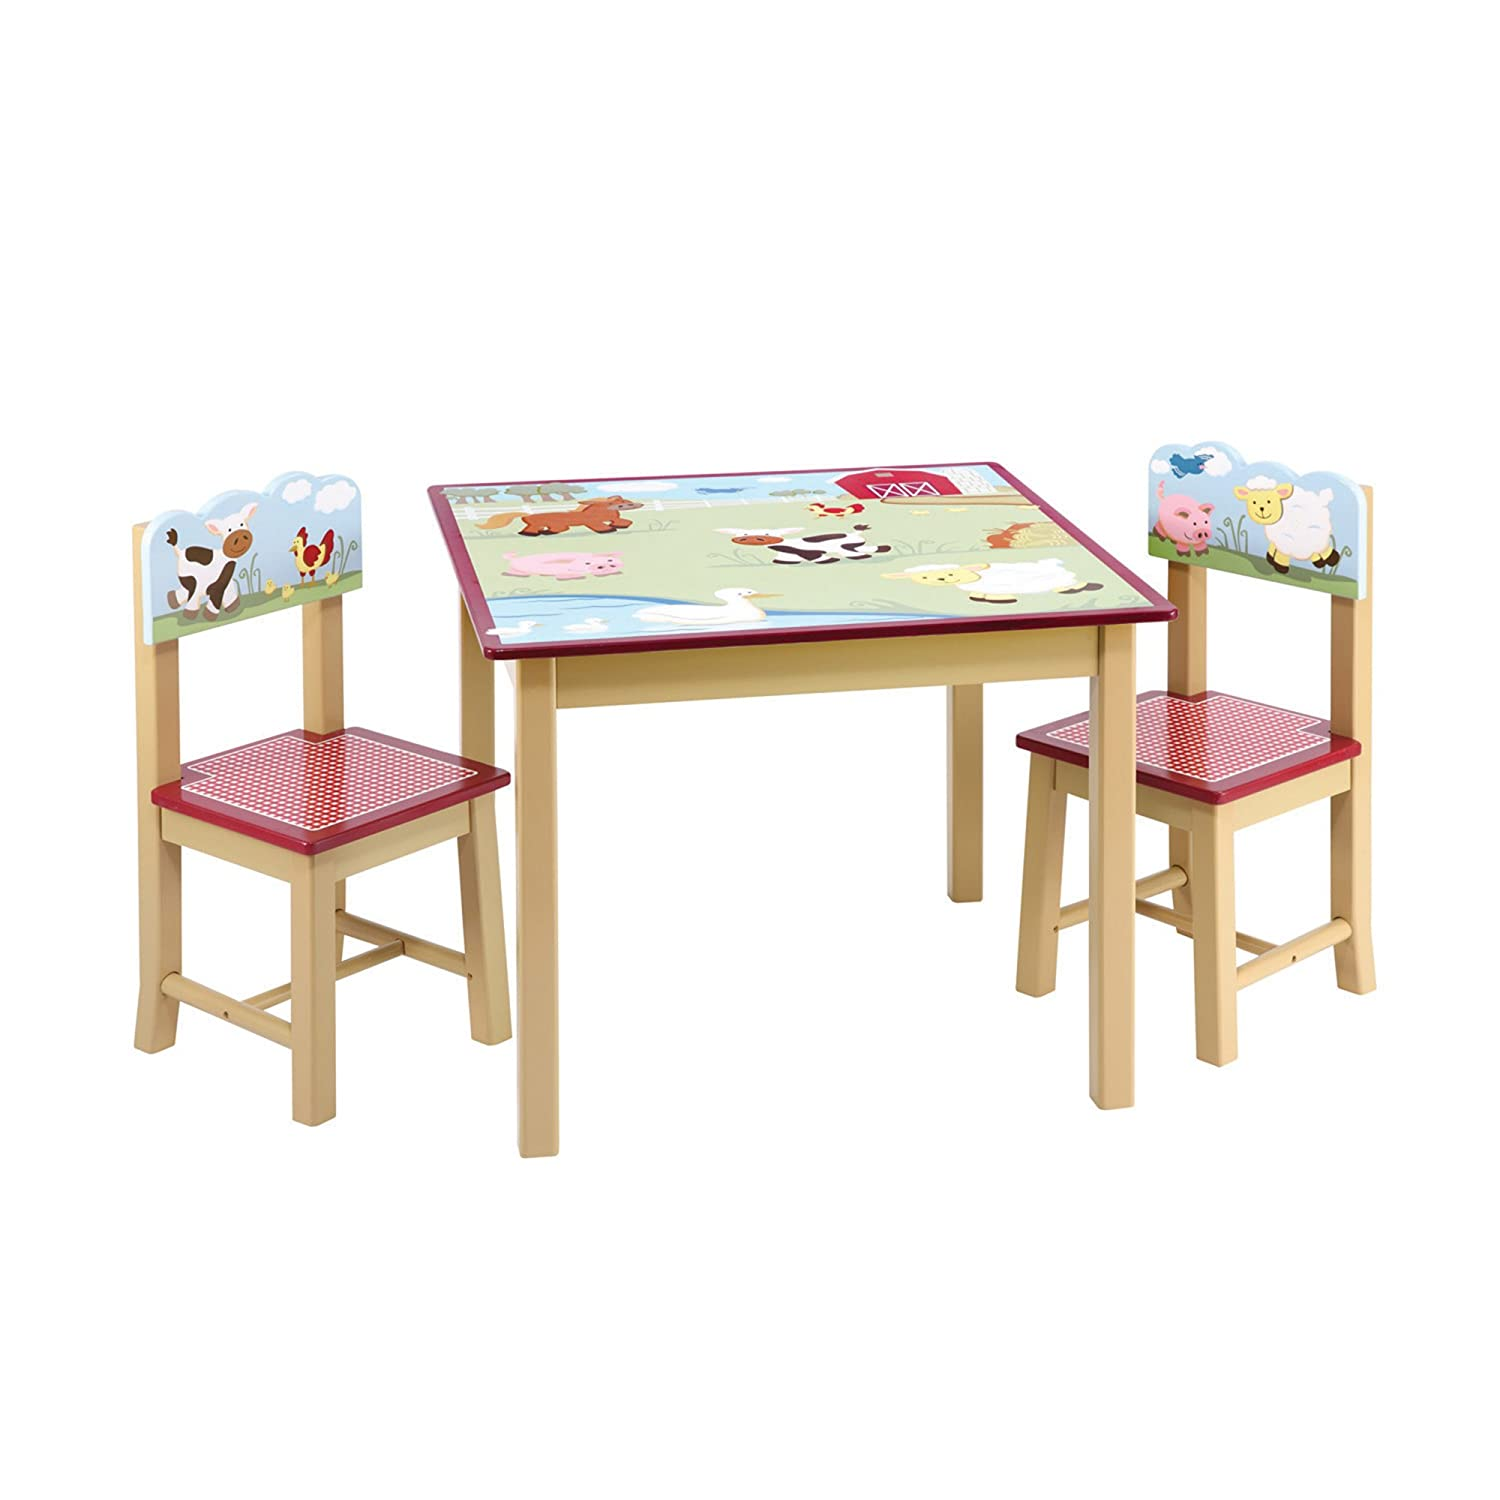 Amazon Guidecraft Wood Hand painted Farm Friends Table